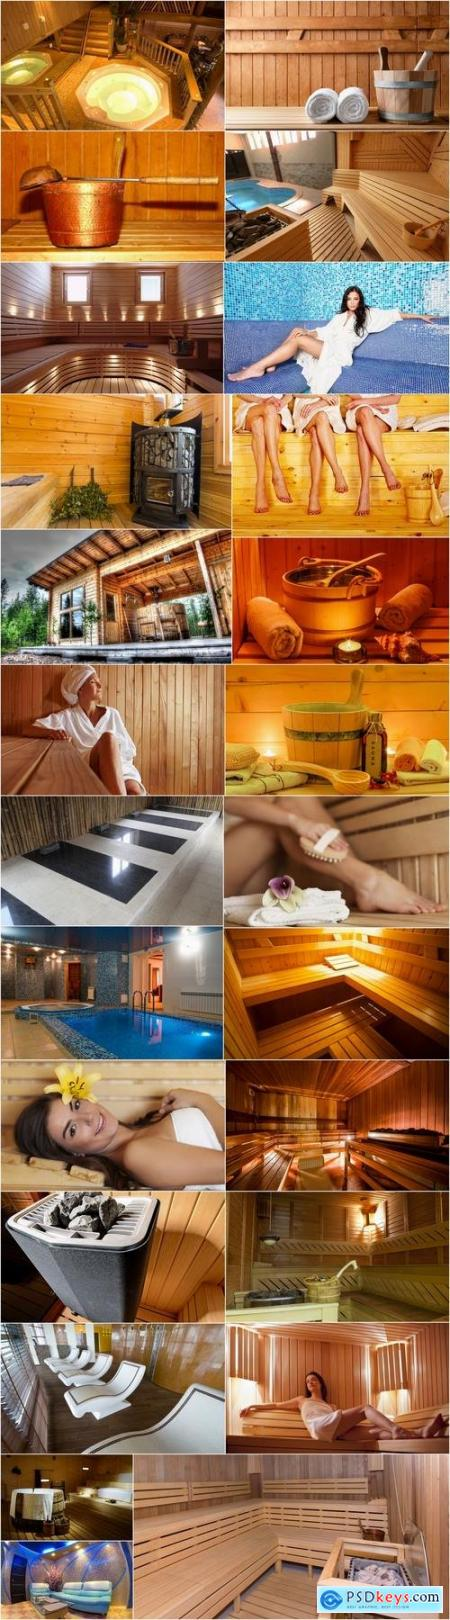 Interior sauna steam room relaxation pool 25 HQ Jpeg